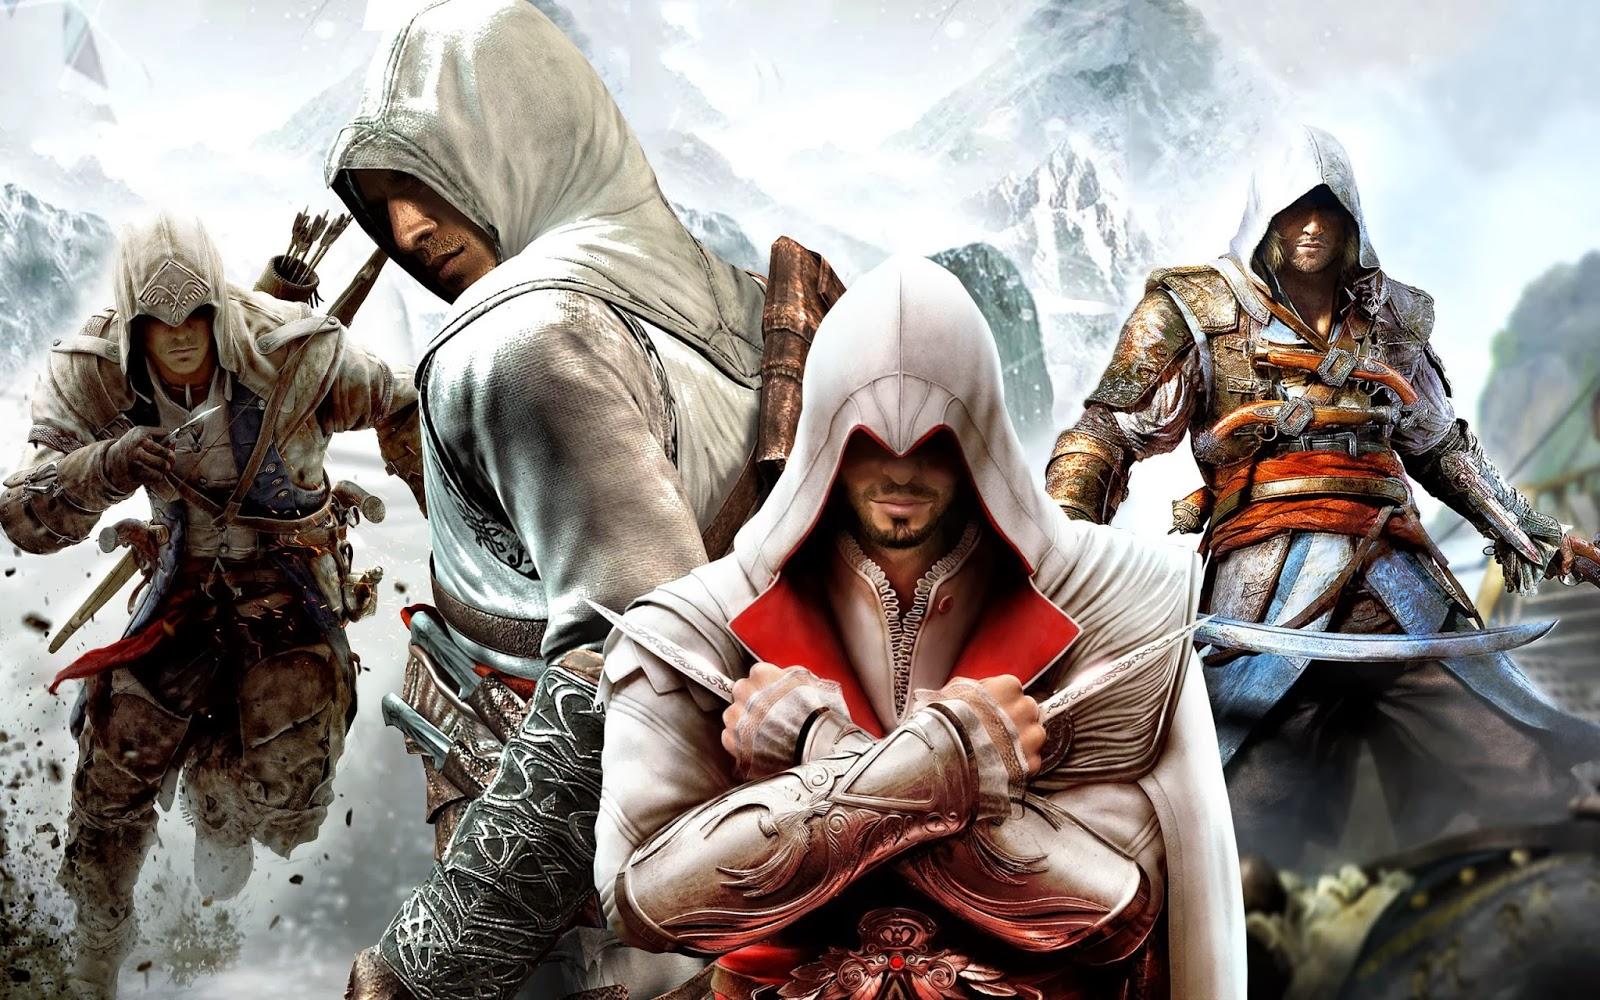 What About Cynics A Critical Analysis Of The Assassin S Creed